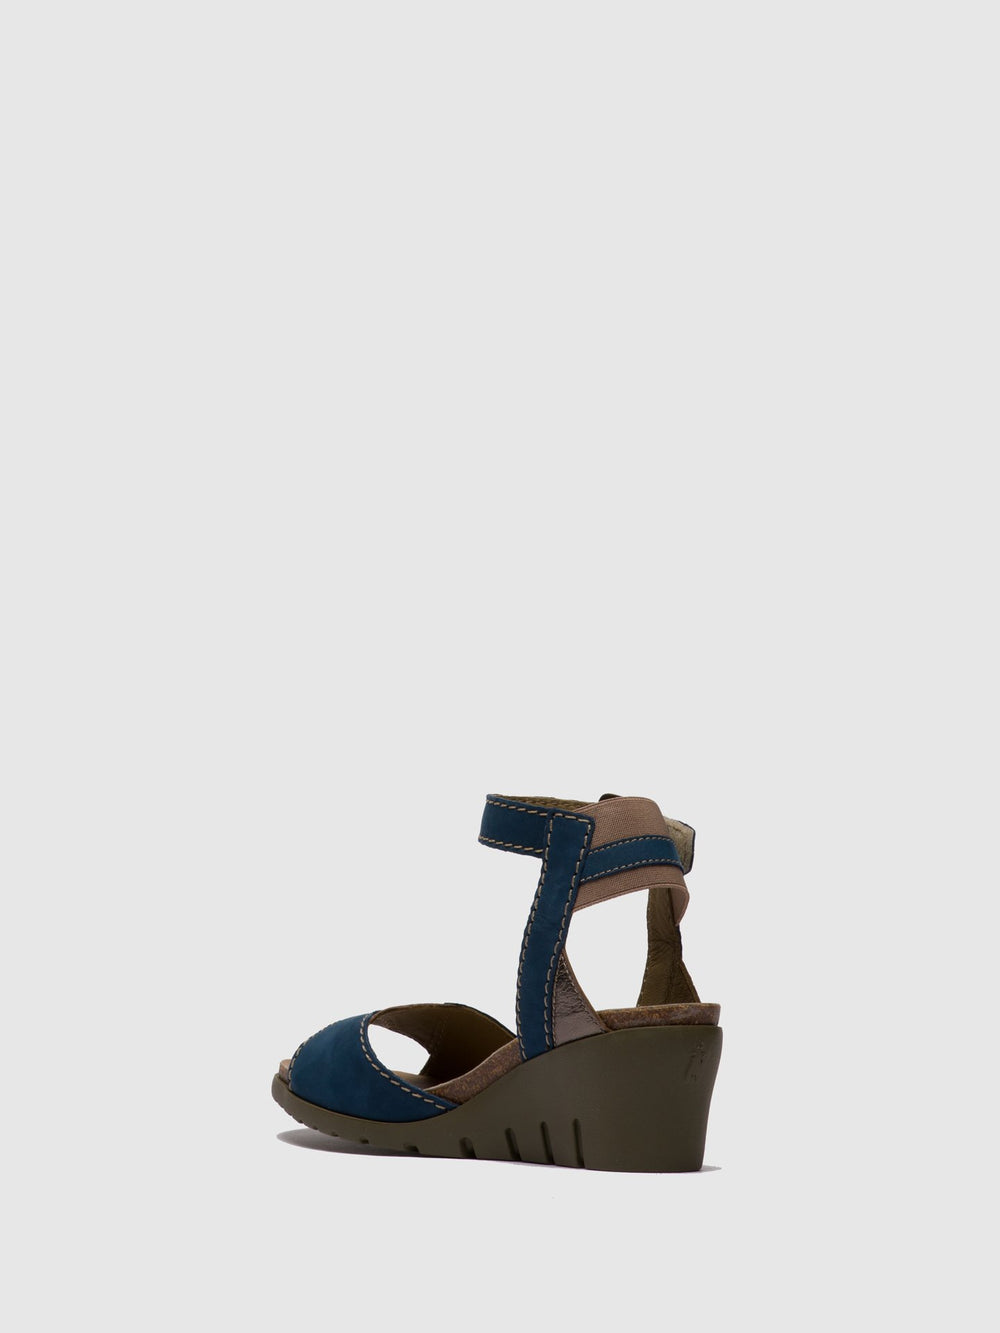 DarkBlue Ankle Strap Sandals